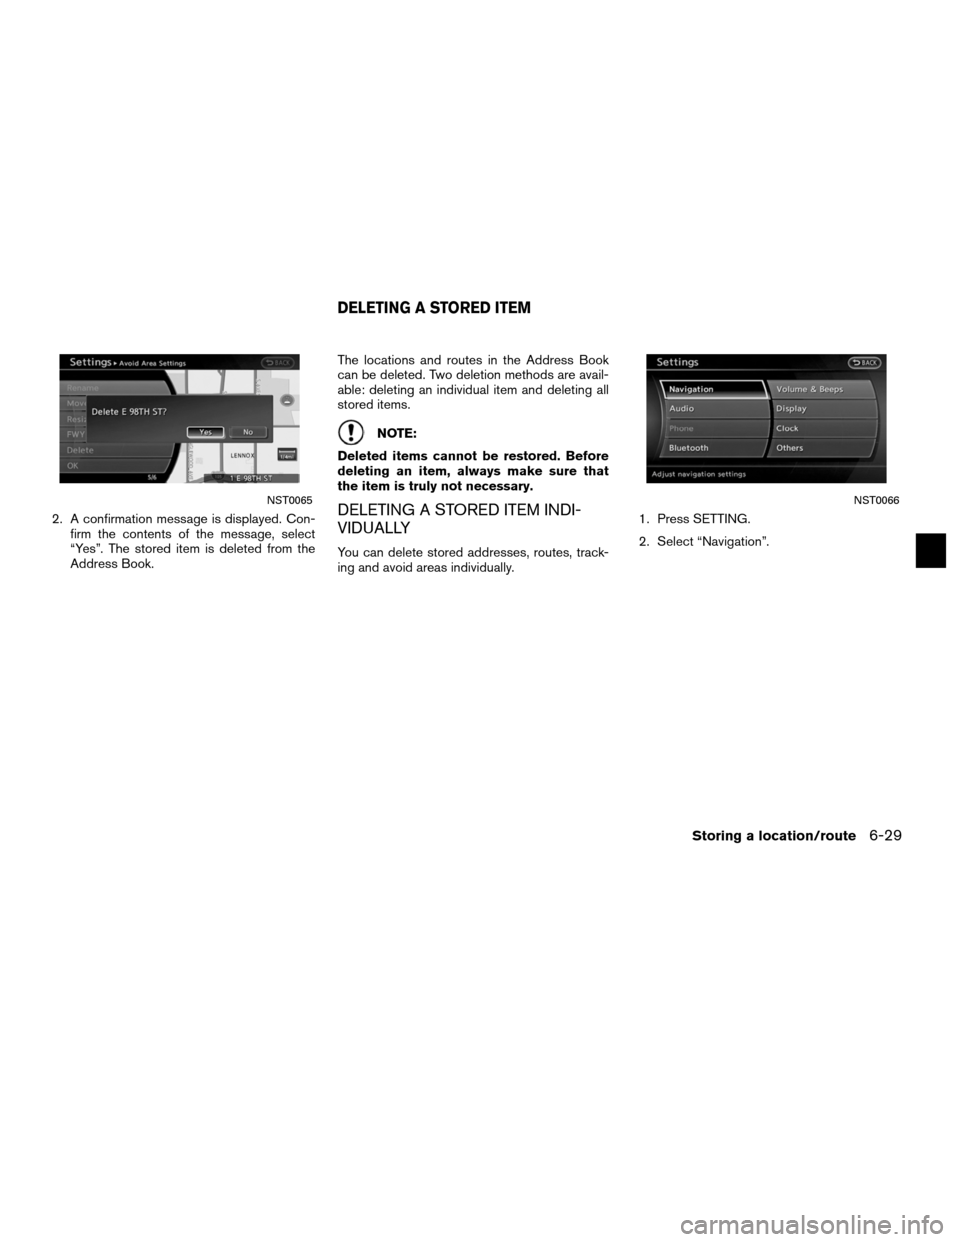 NISSAN ALTIMA HYBRID 2011 L32A / 4.G Navigation Manual, Page 179